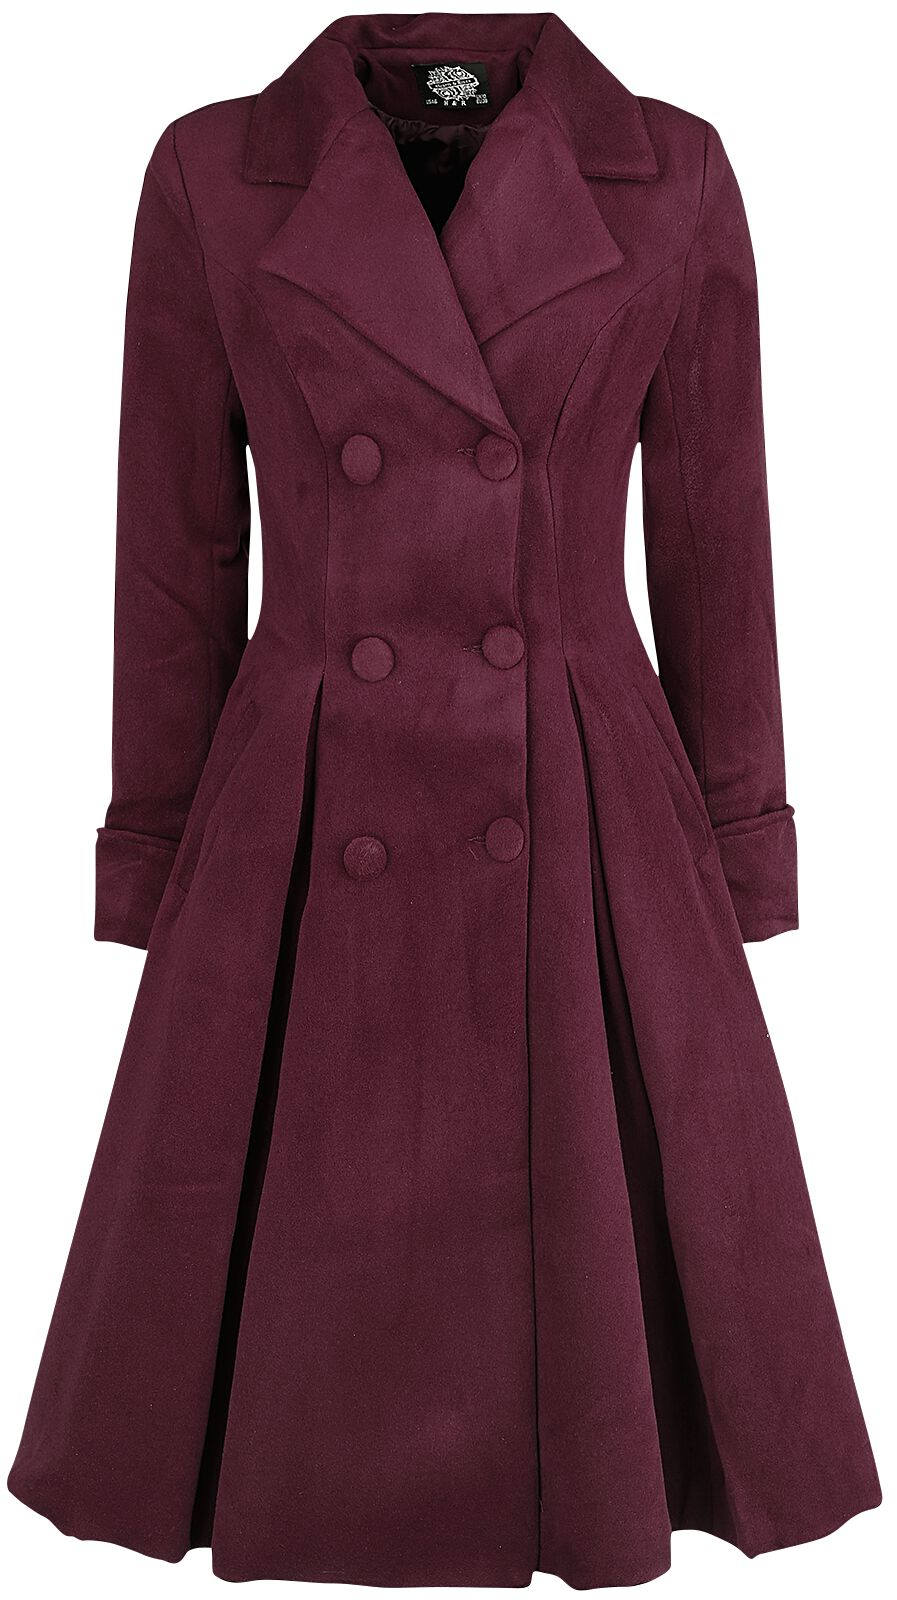 Jacken - H R London Eleanor Swing Coat Mantel burgund  - Onlineshop EMP